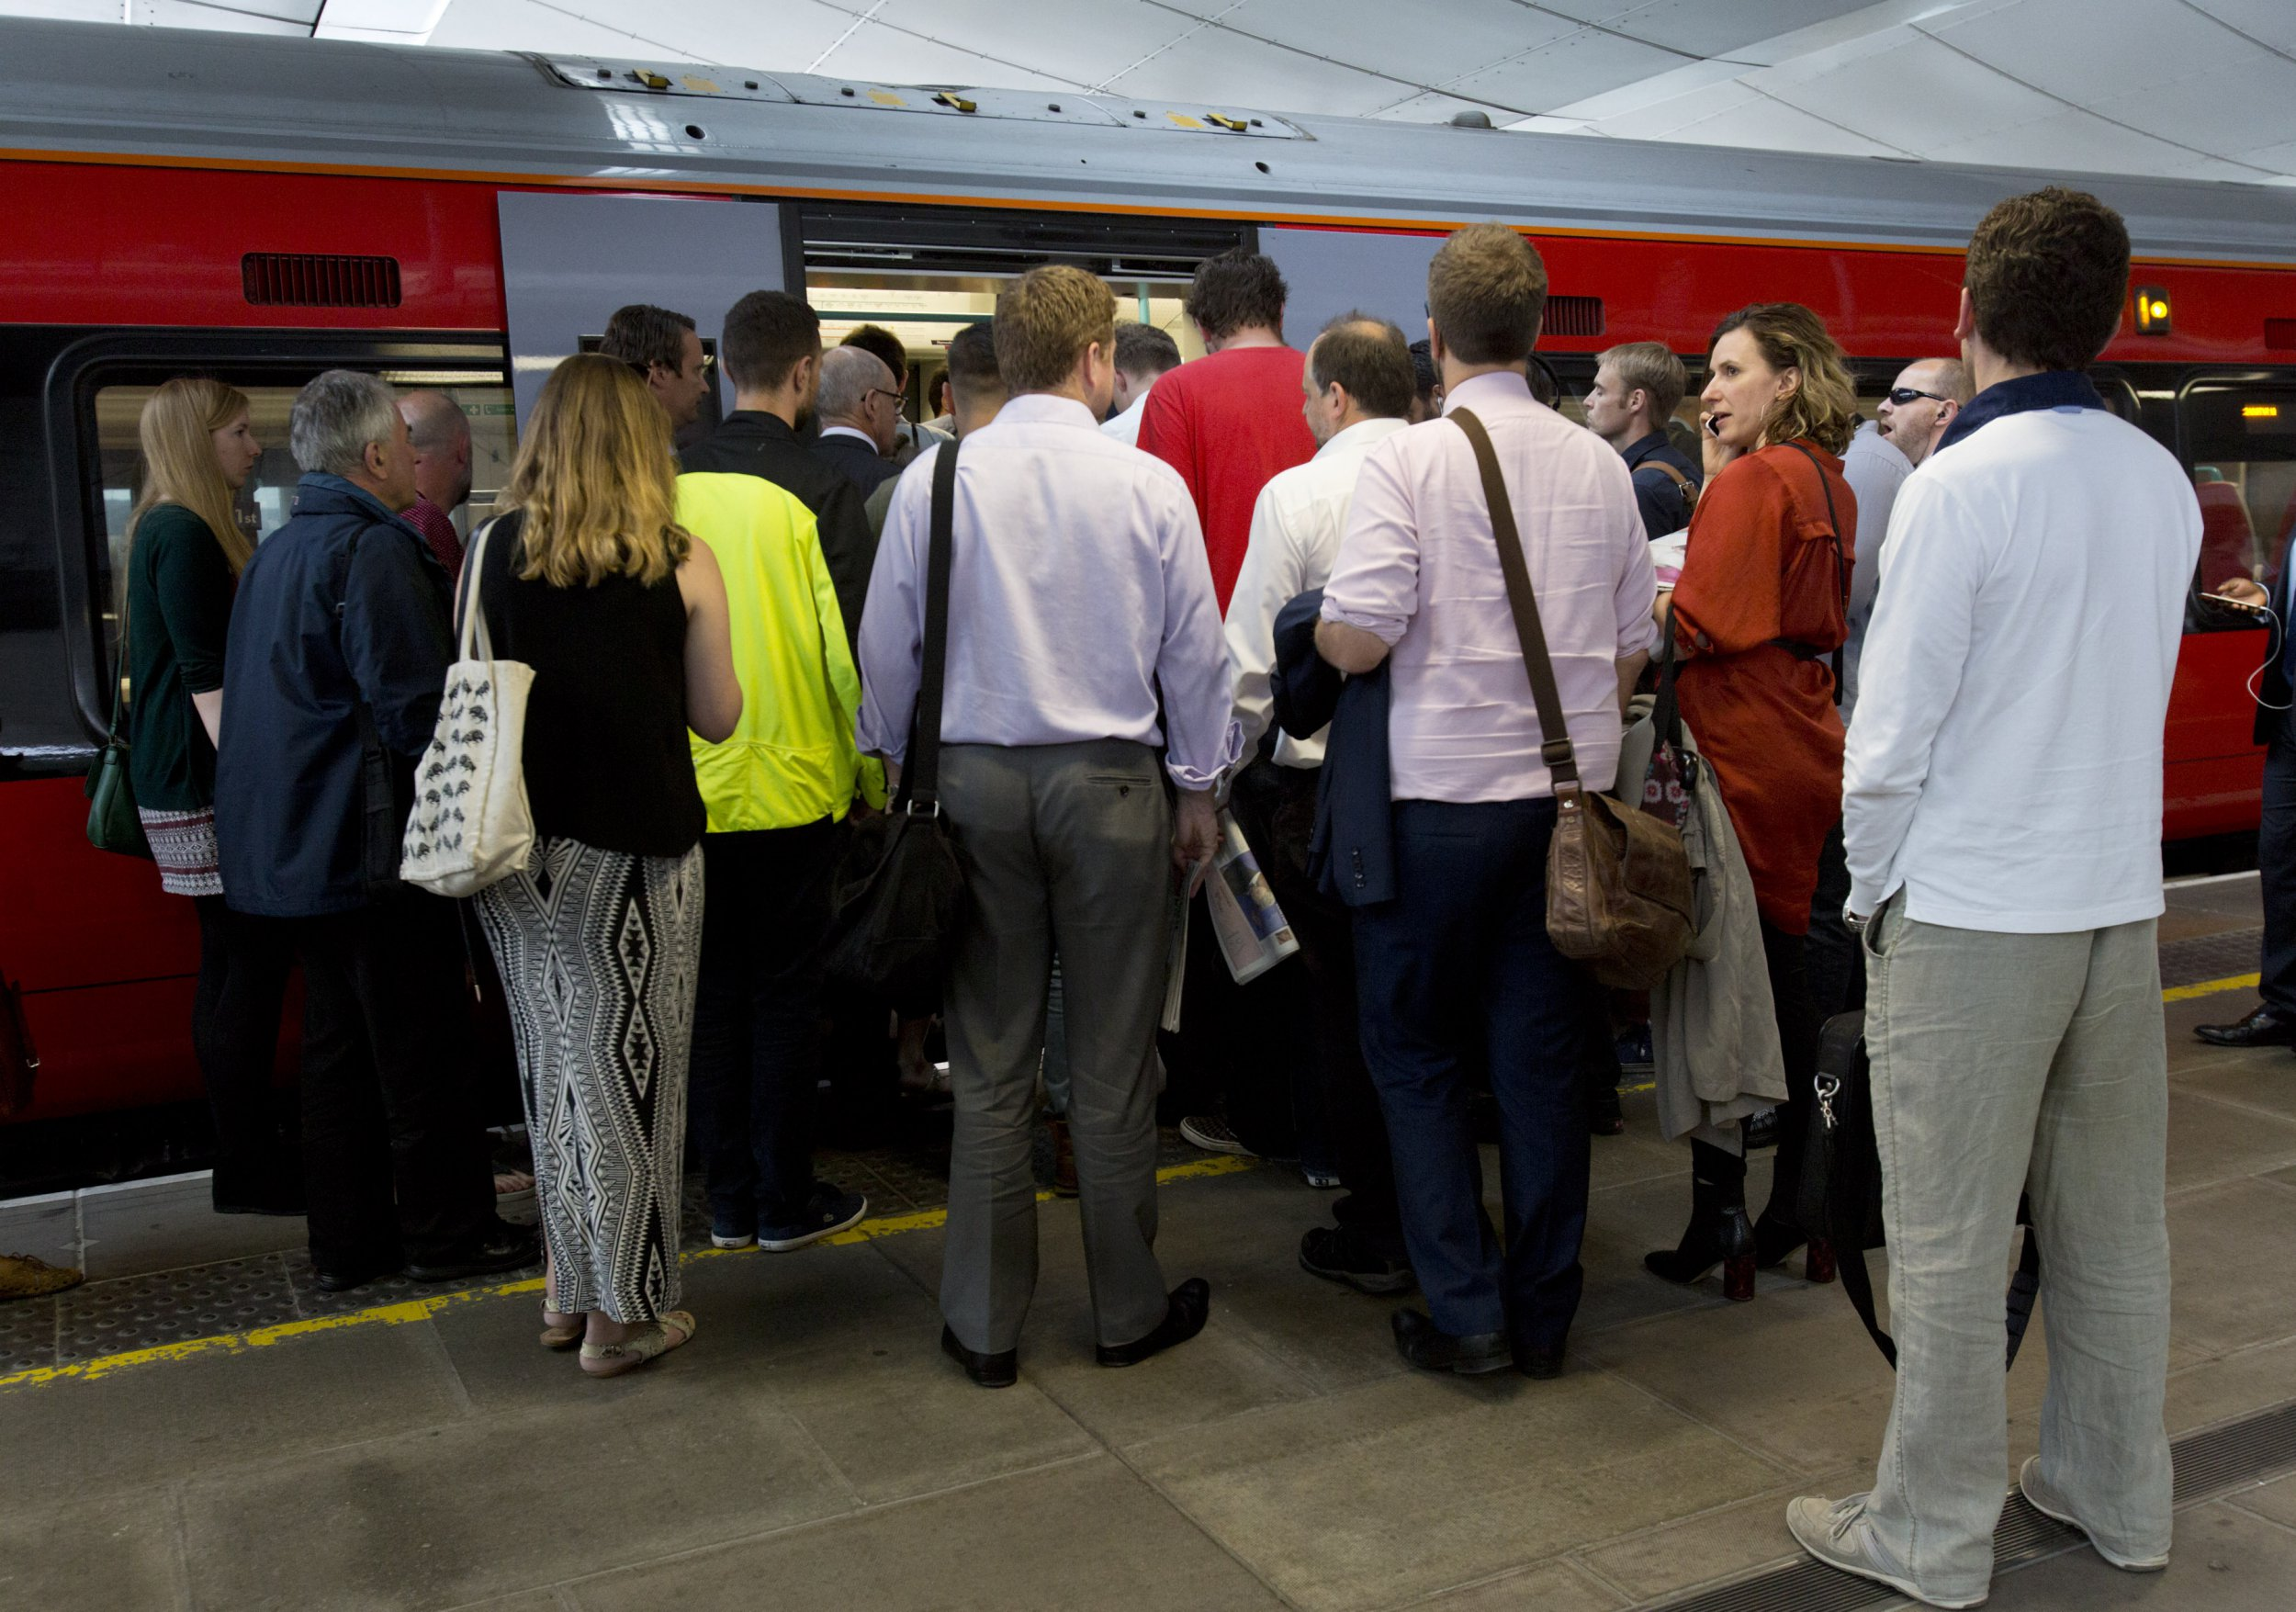 File photo dated 28/07/2016 of commuters waiting to board a train, overcrowding on trains has hit one of its highest levels and is set to get worse, Labour has claimed. PRESS ASSOCIATION Photo. Issue date: Thursday January 3, 2019. A study by the party suggested that the most overcrowded train routes are on average 187% over capacity. See PA story INDUSTRY Overcrowding. Photo credit should read: Yui Mok/PA Wire